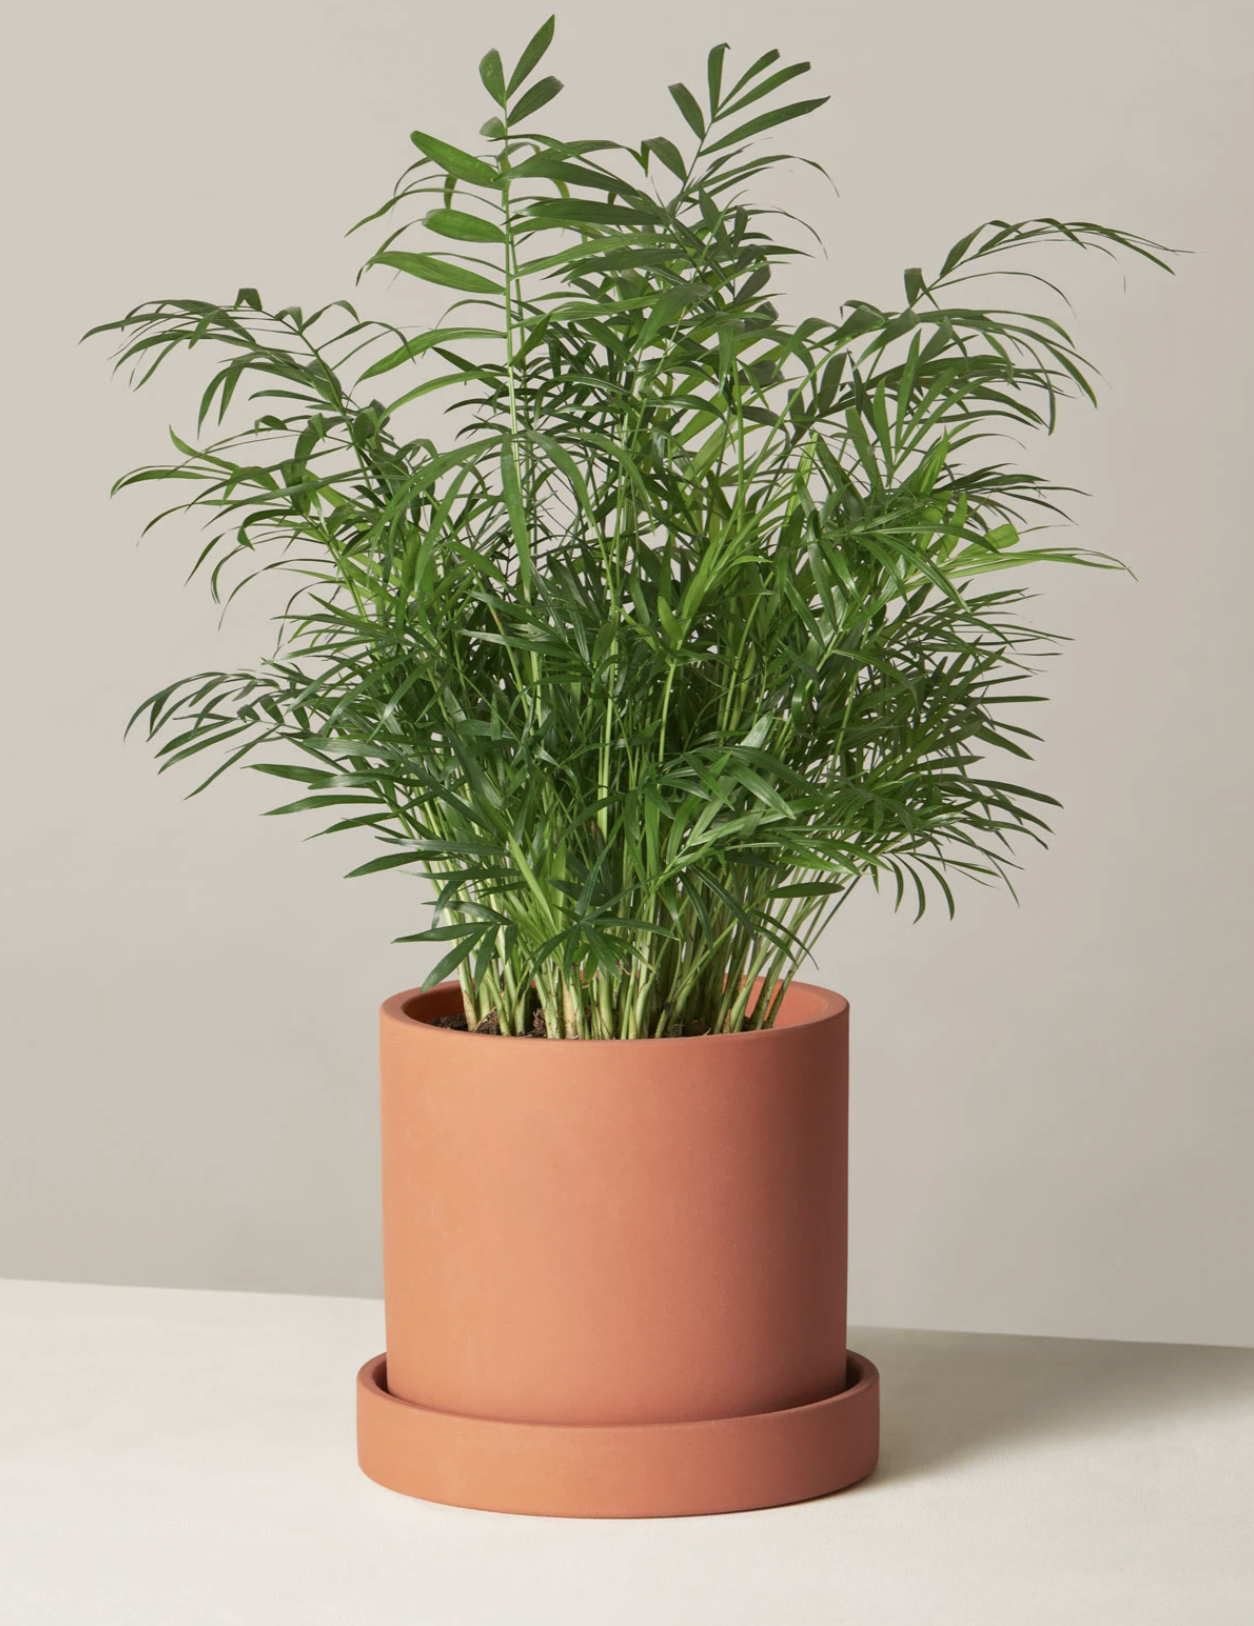 Parlor Palm - Image via The Sill